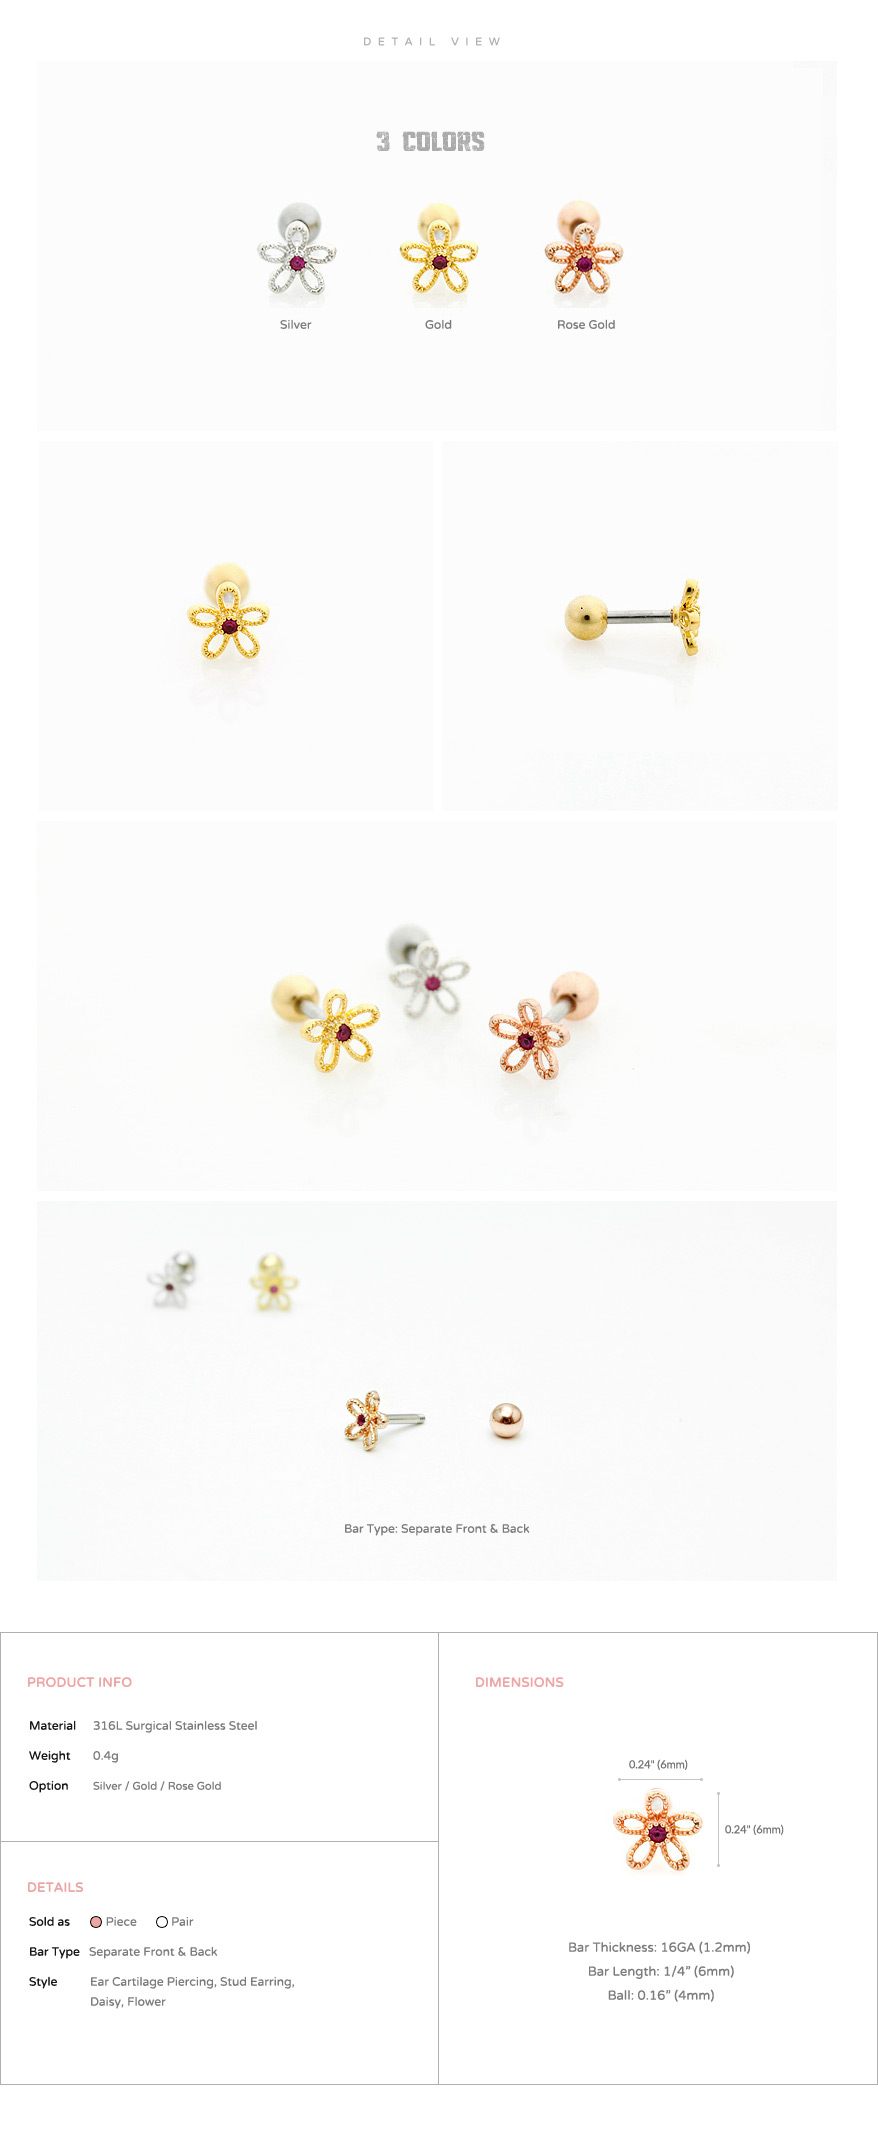 ear_studs_piercing_Cartilage_16g_316l_Stainless_Steel_earring_korean_asian_crystal_barbell_flower_Daisy_rosegold_4